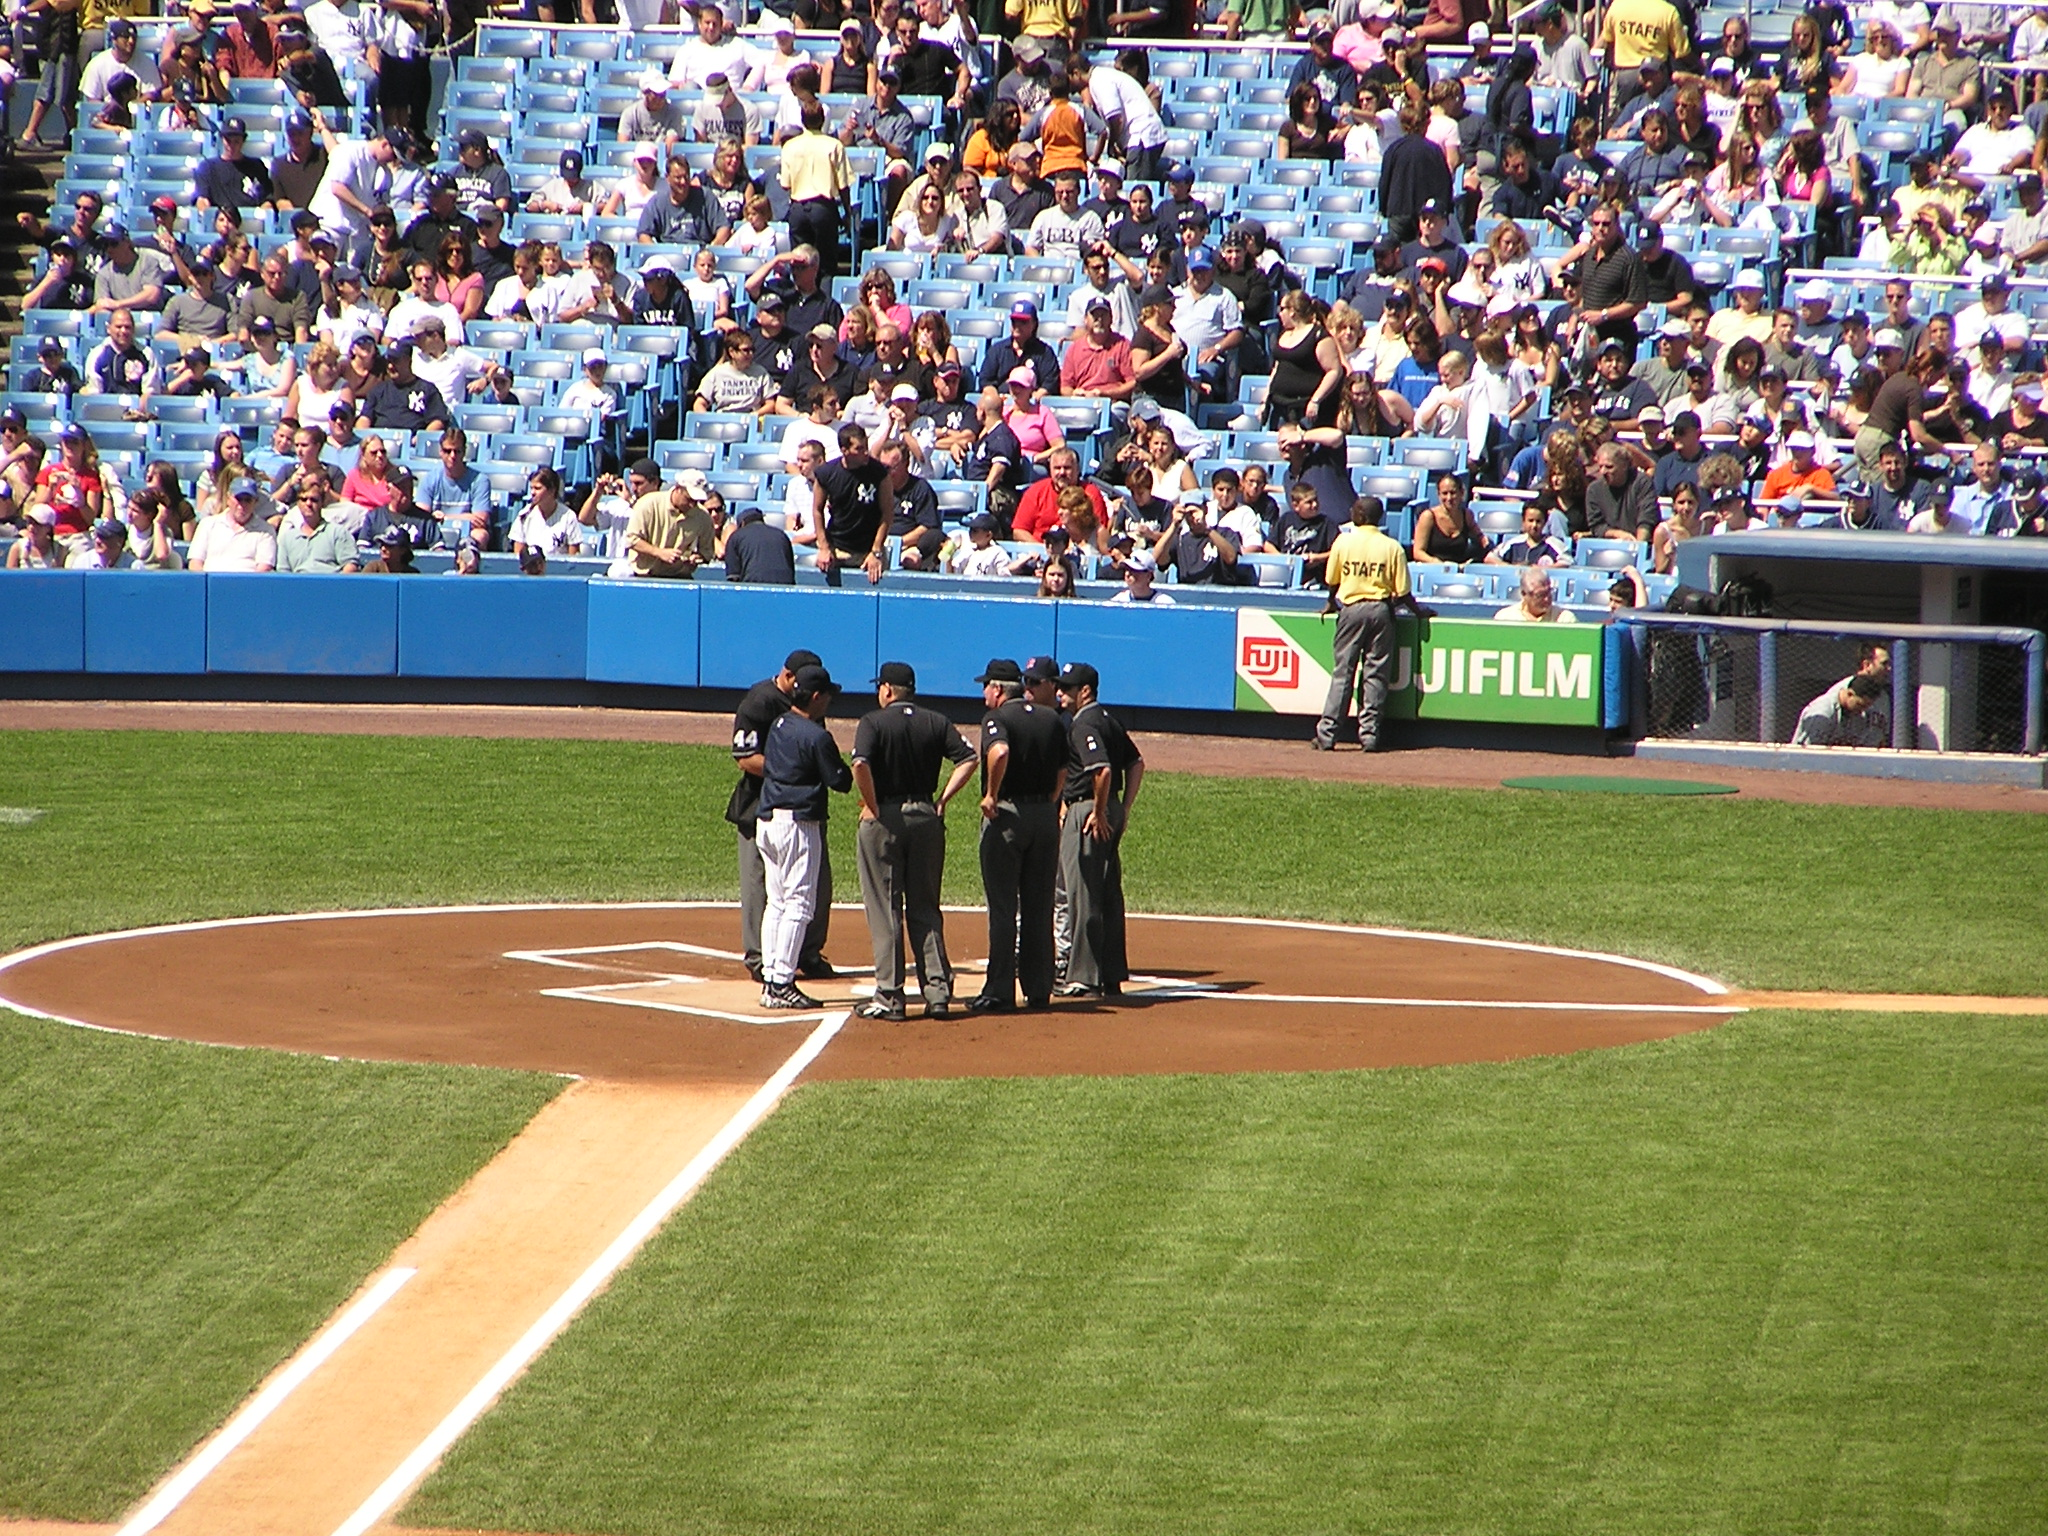 Exchanging the Line Up cards at The Stadium